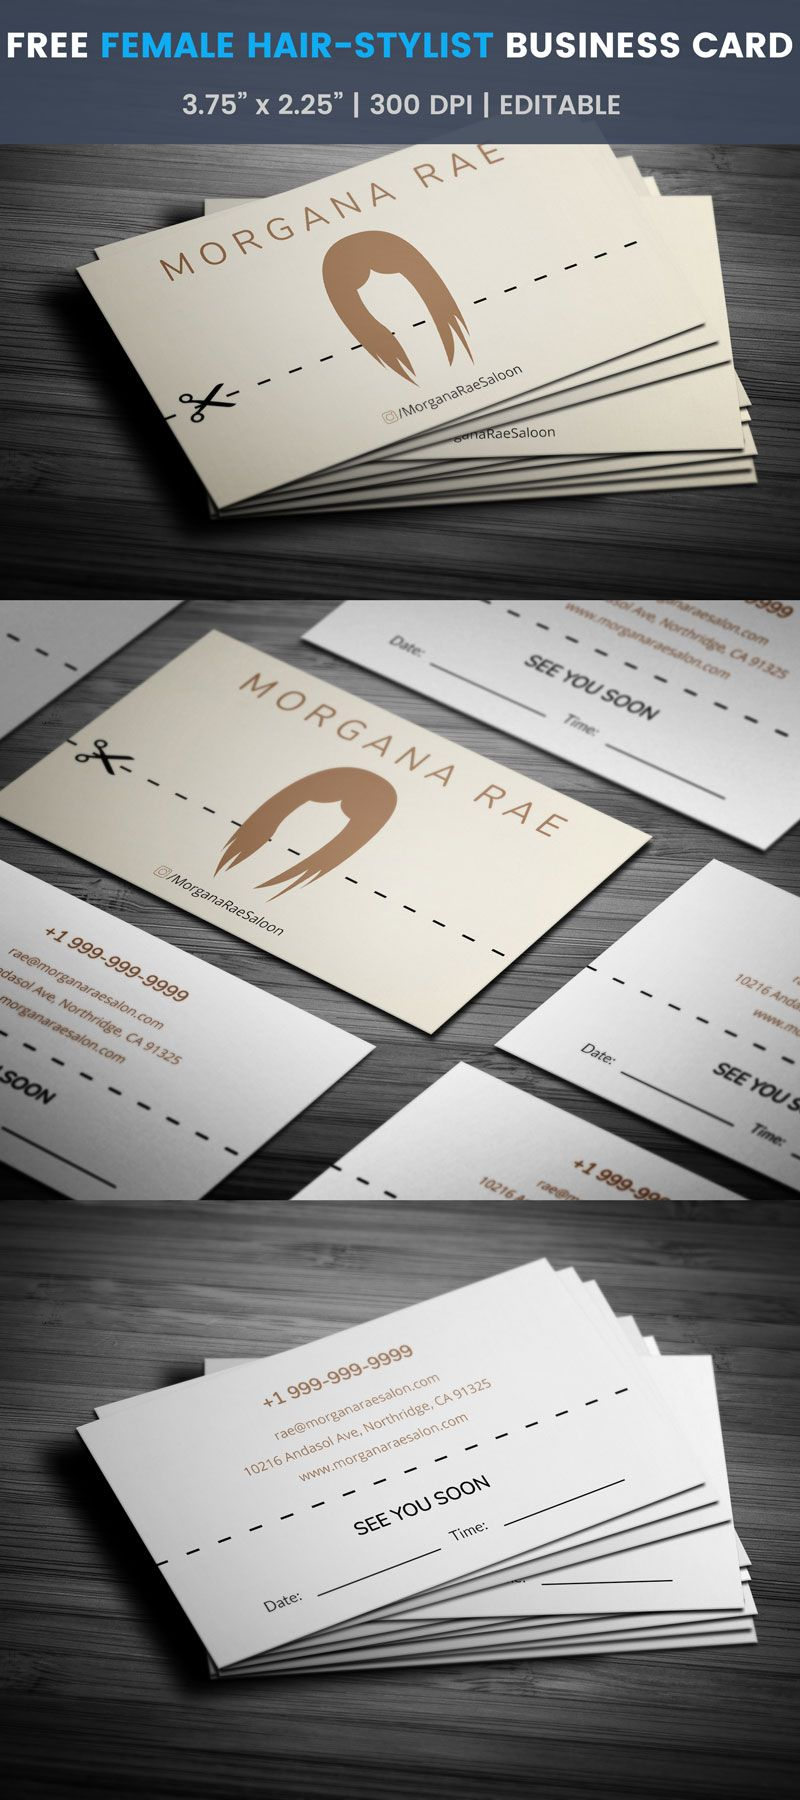 Free Female Hairstylist Card   Hairstylist business cards, Business ...